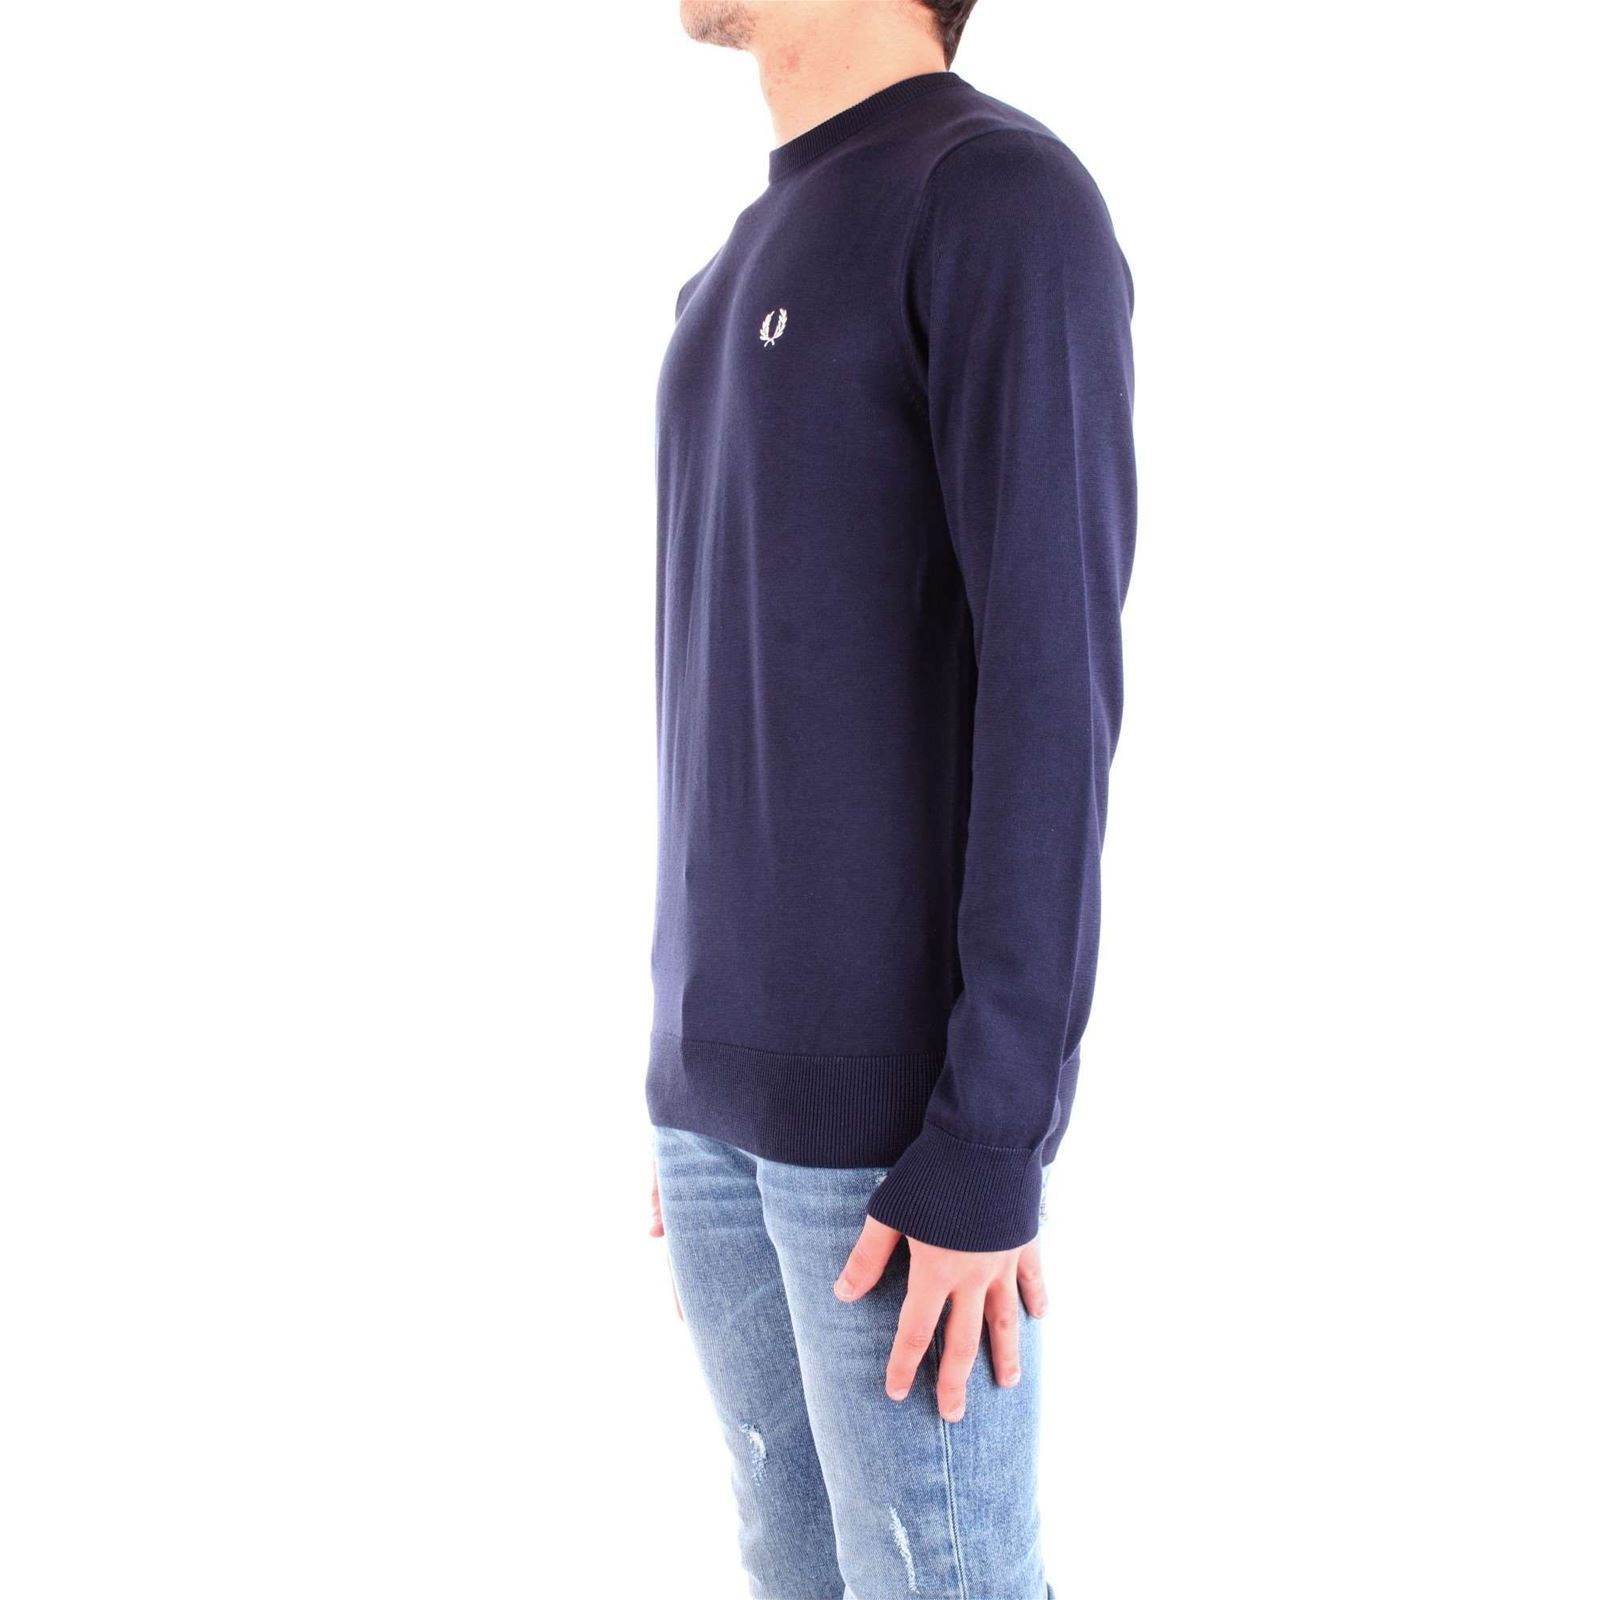 PullBleu PullBleu V Homme Homme Fred Fred Perry Perry hstrdQ